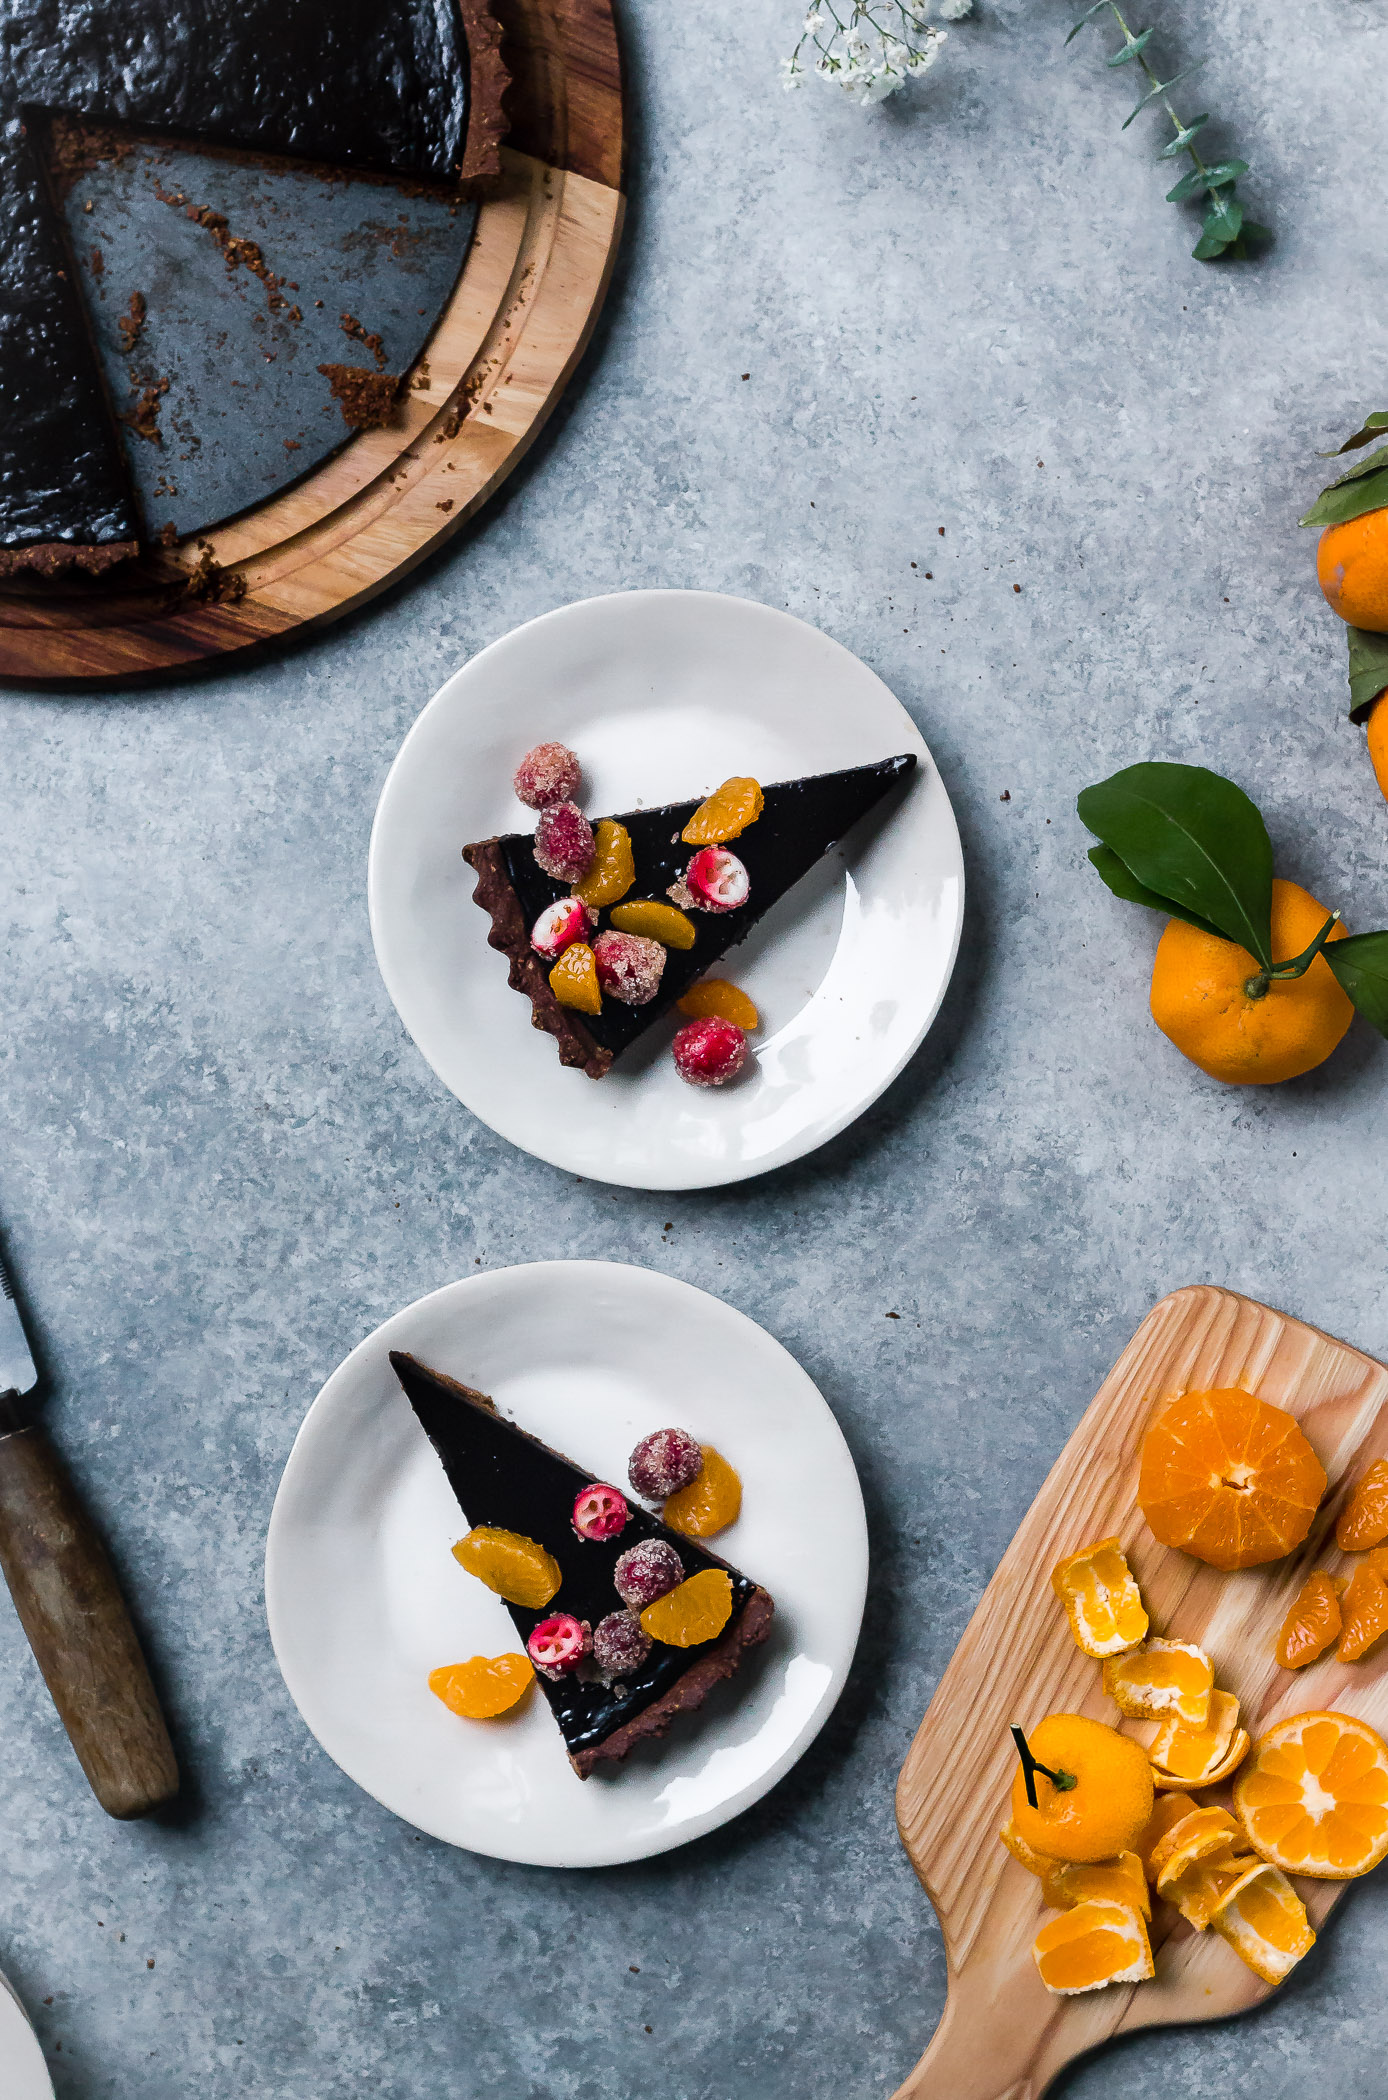 slices of dark chocolate tart with sugared cranberry and satsumas